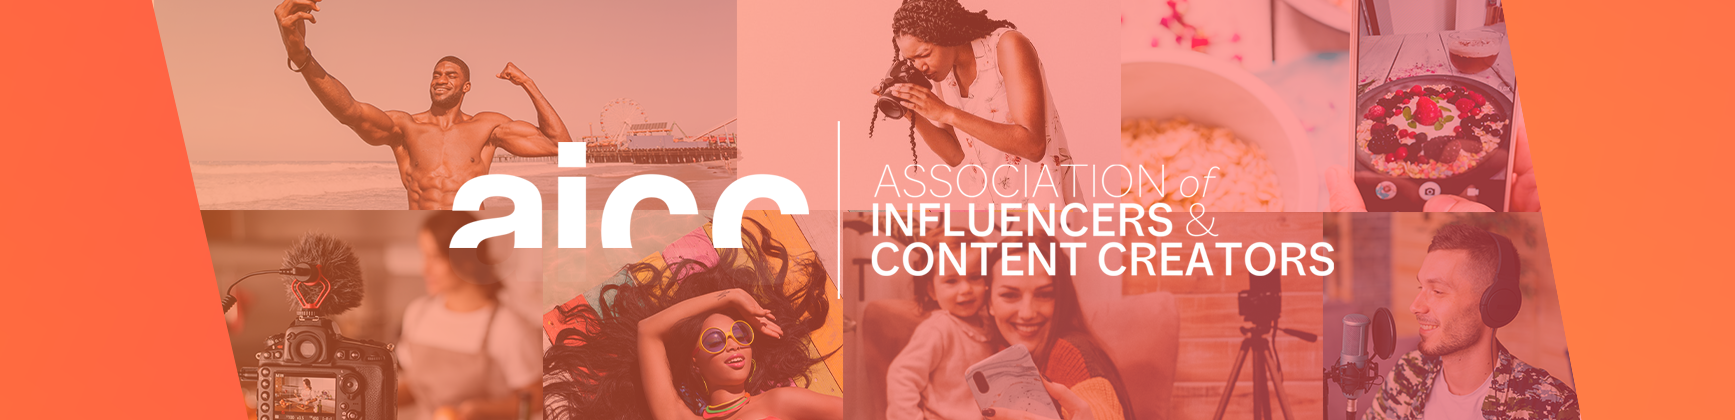 AICC — Actually, The First Trade Organization Founded by Influencers in 2019, Relaunches